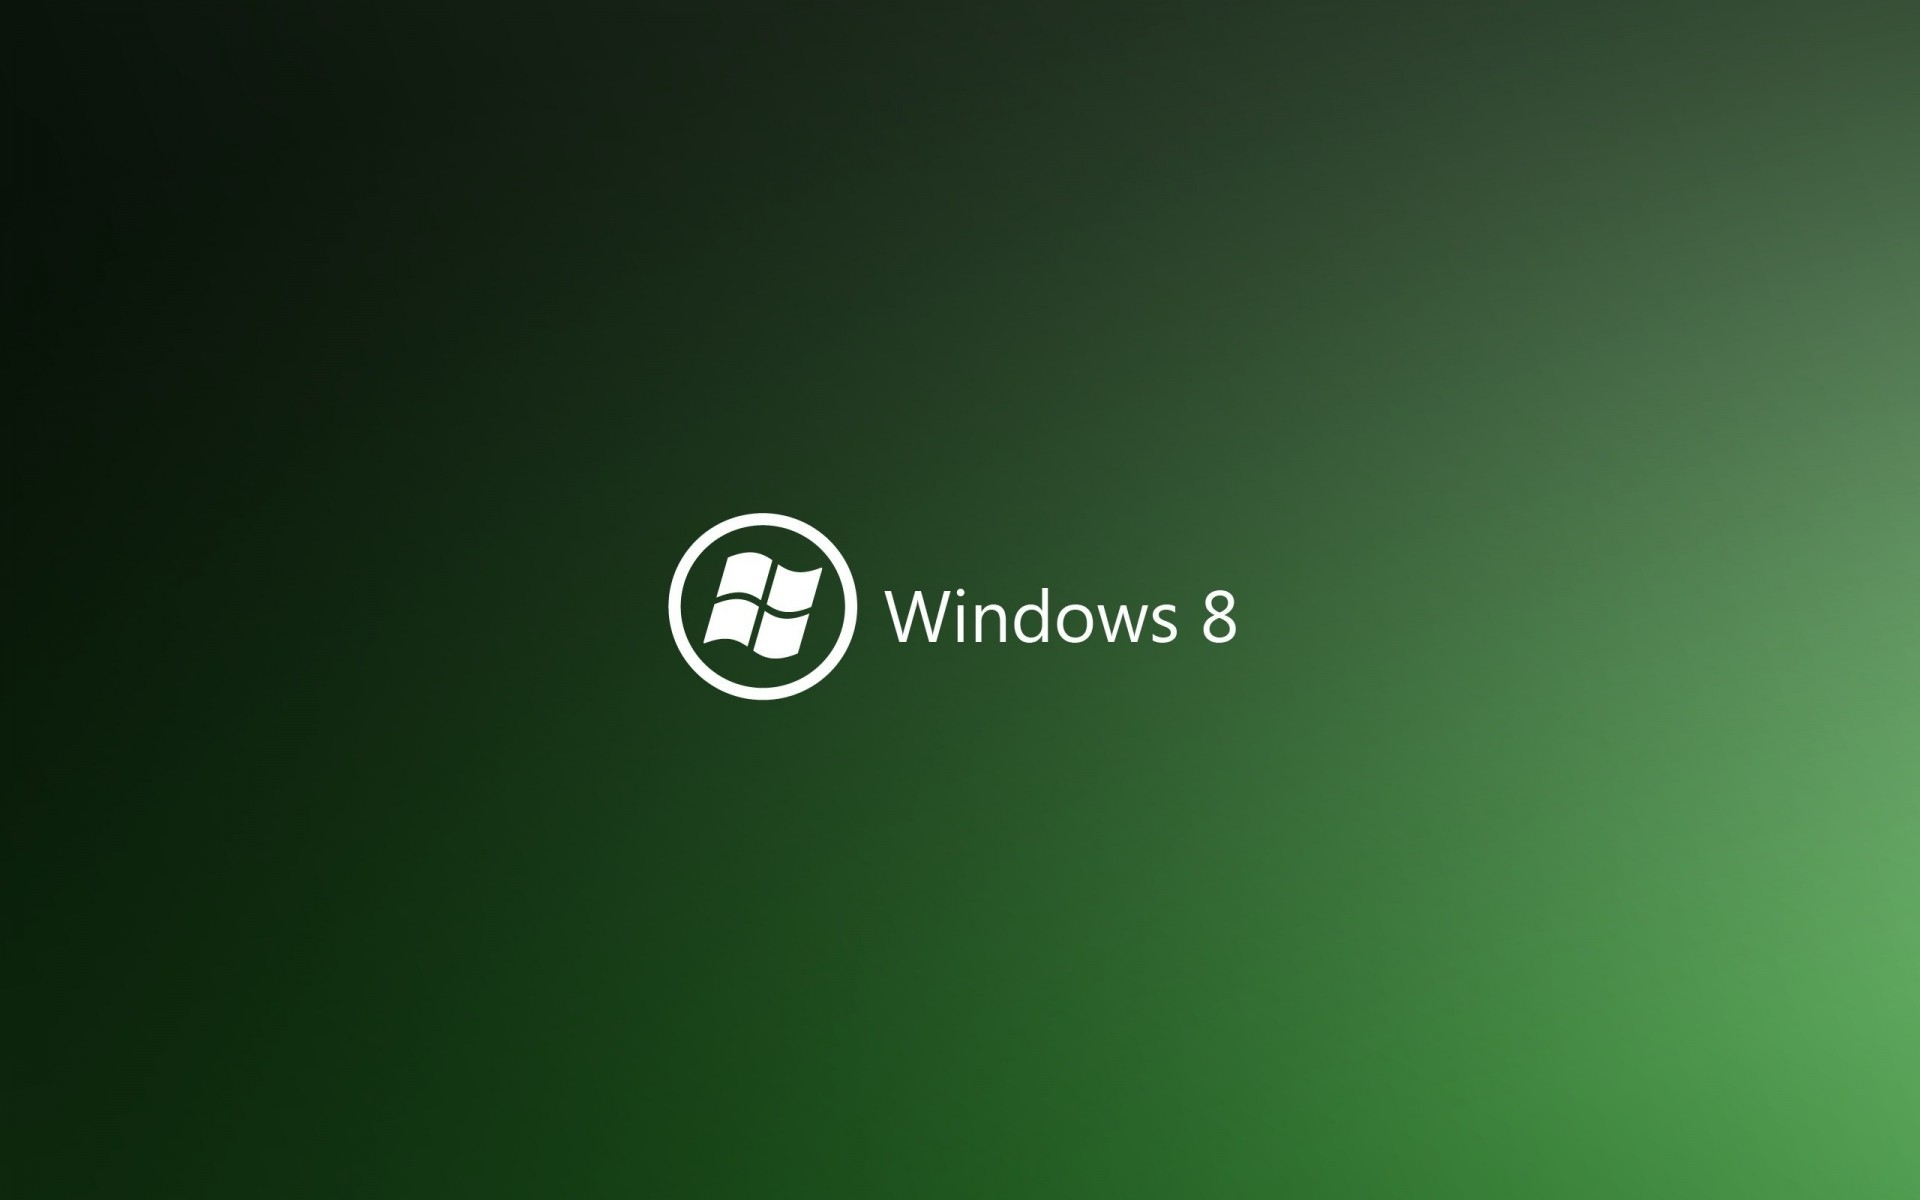 Green Windows 8